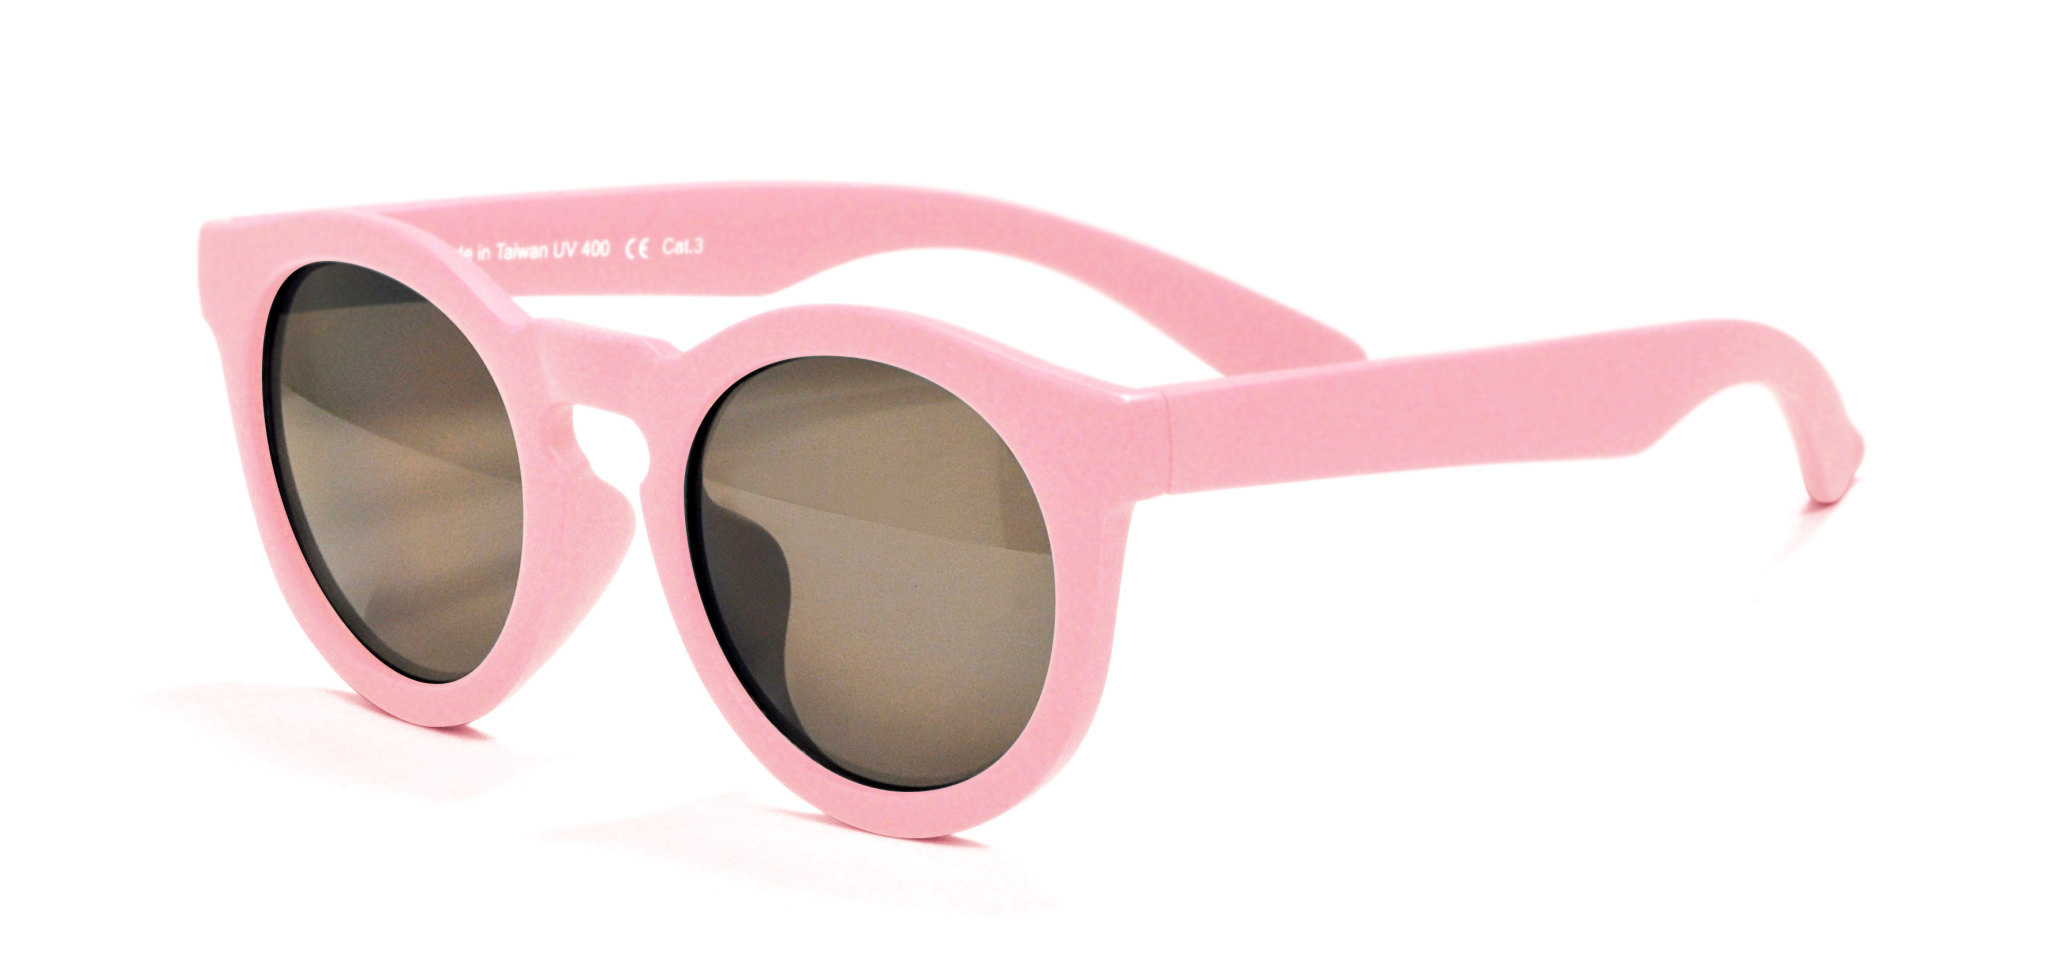 Real Shades Chill Glasses Dusty Rose Size 2+